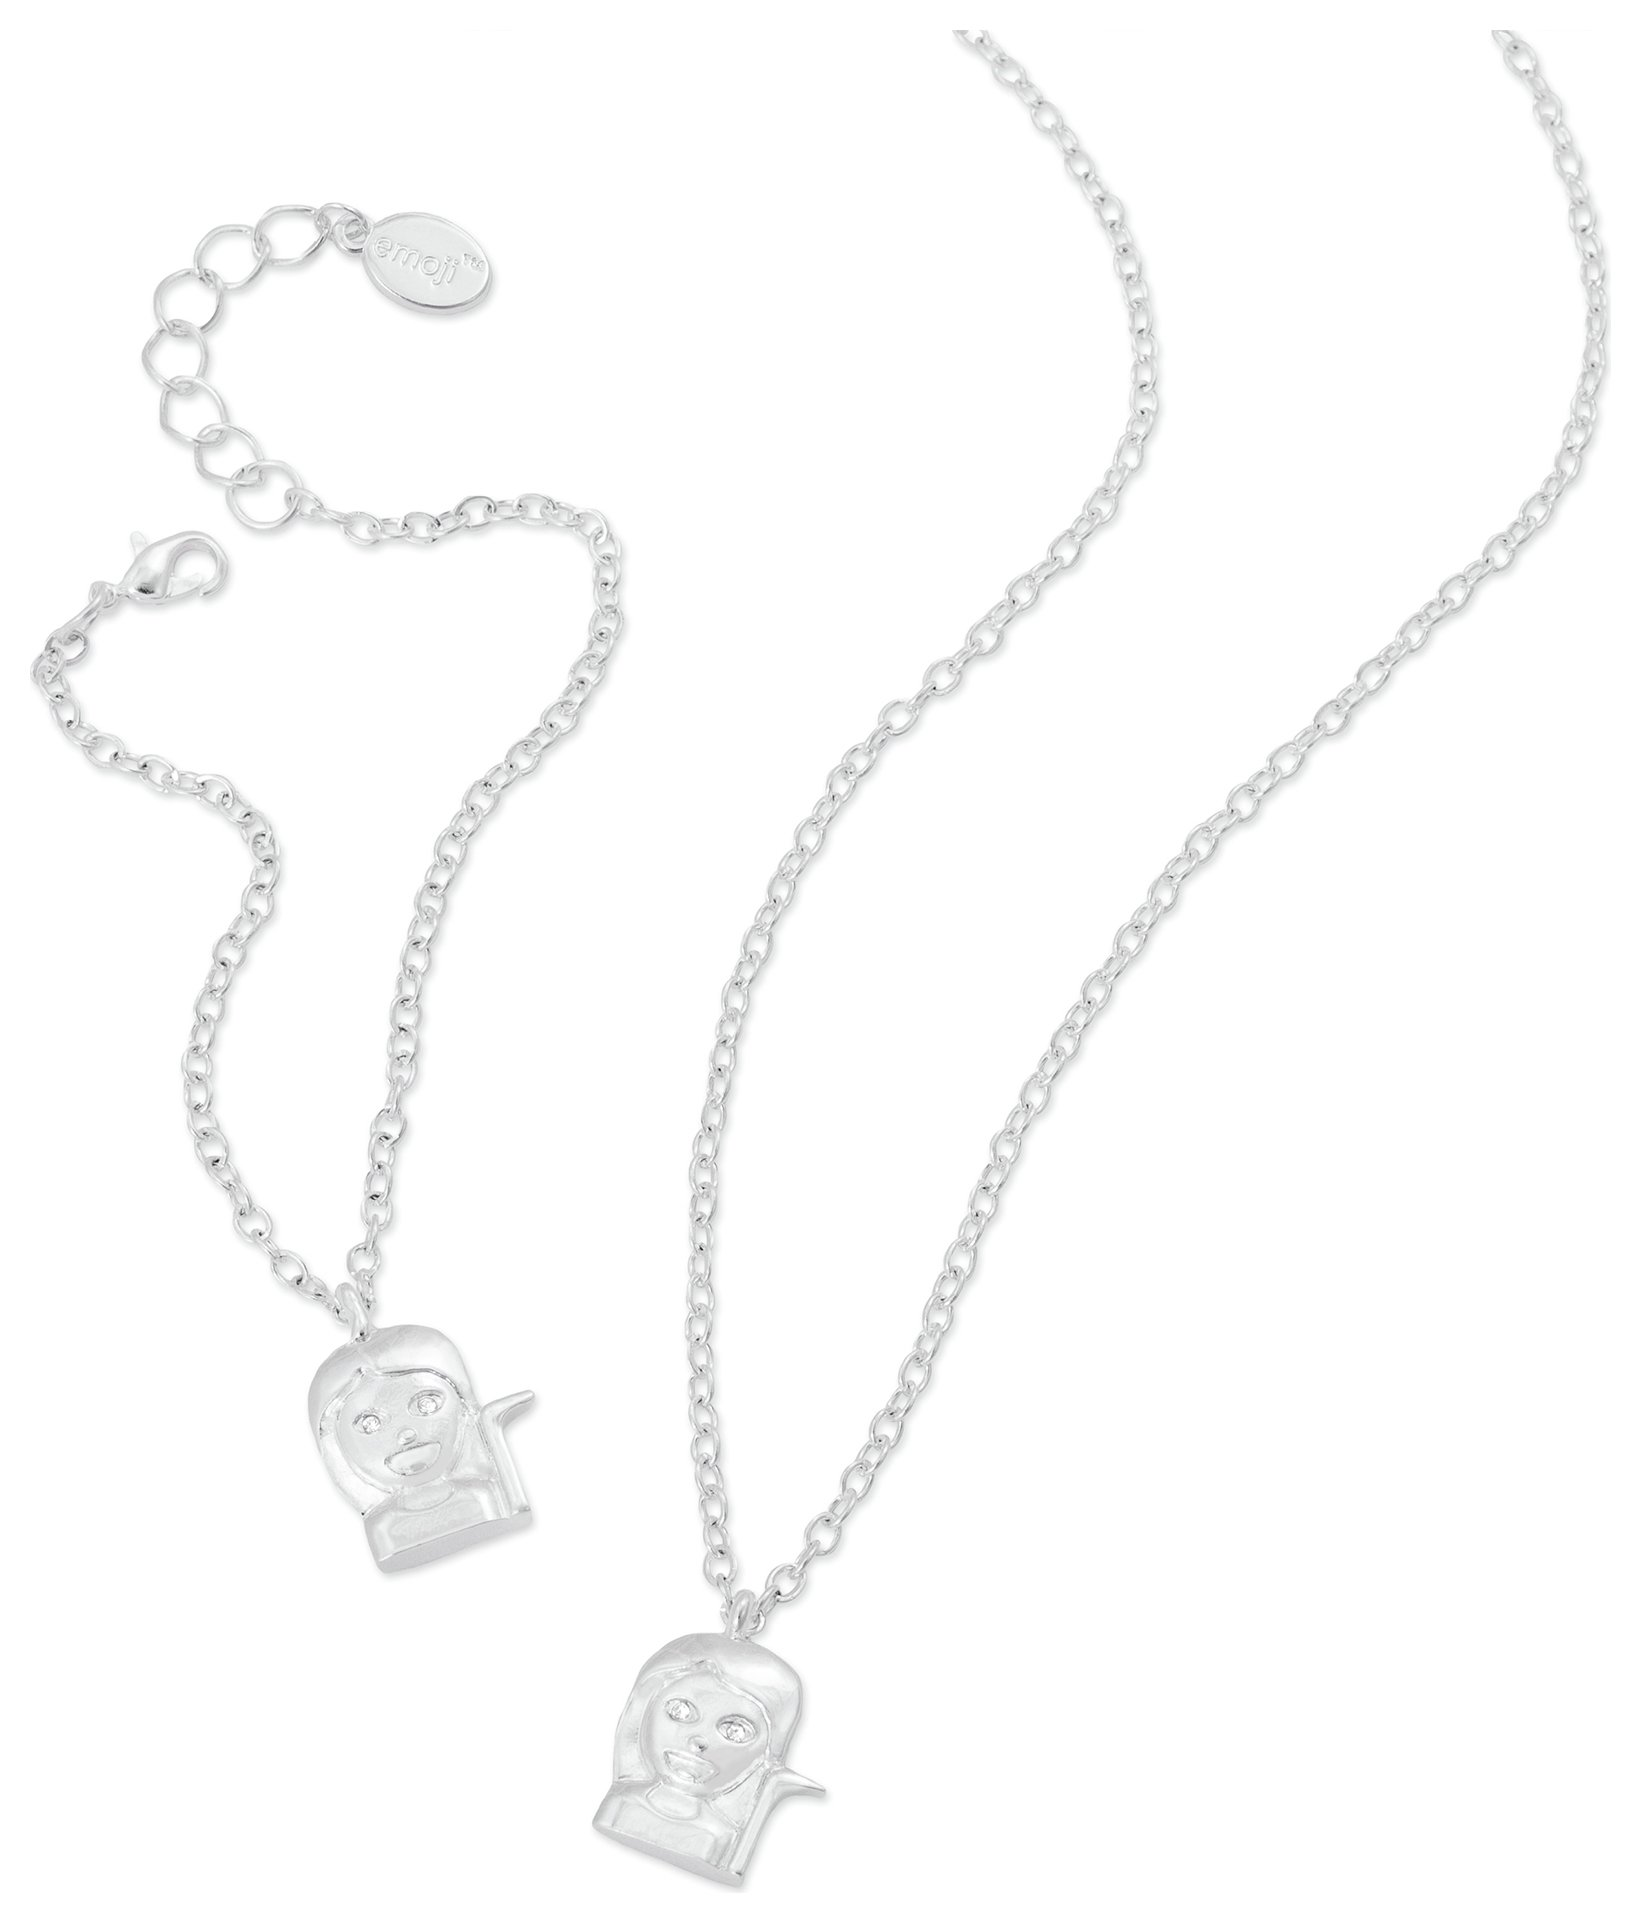 Image of Emoji Sassy Pendant and Bracelet Set